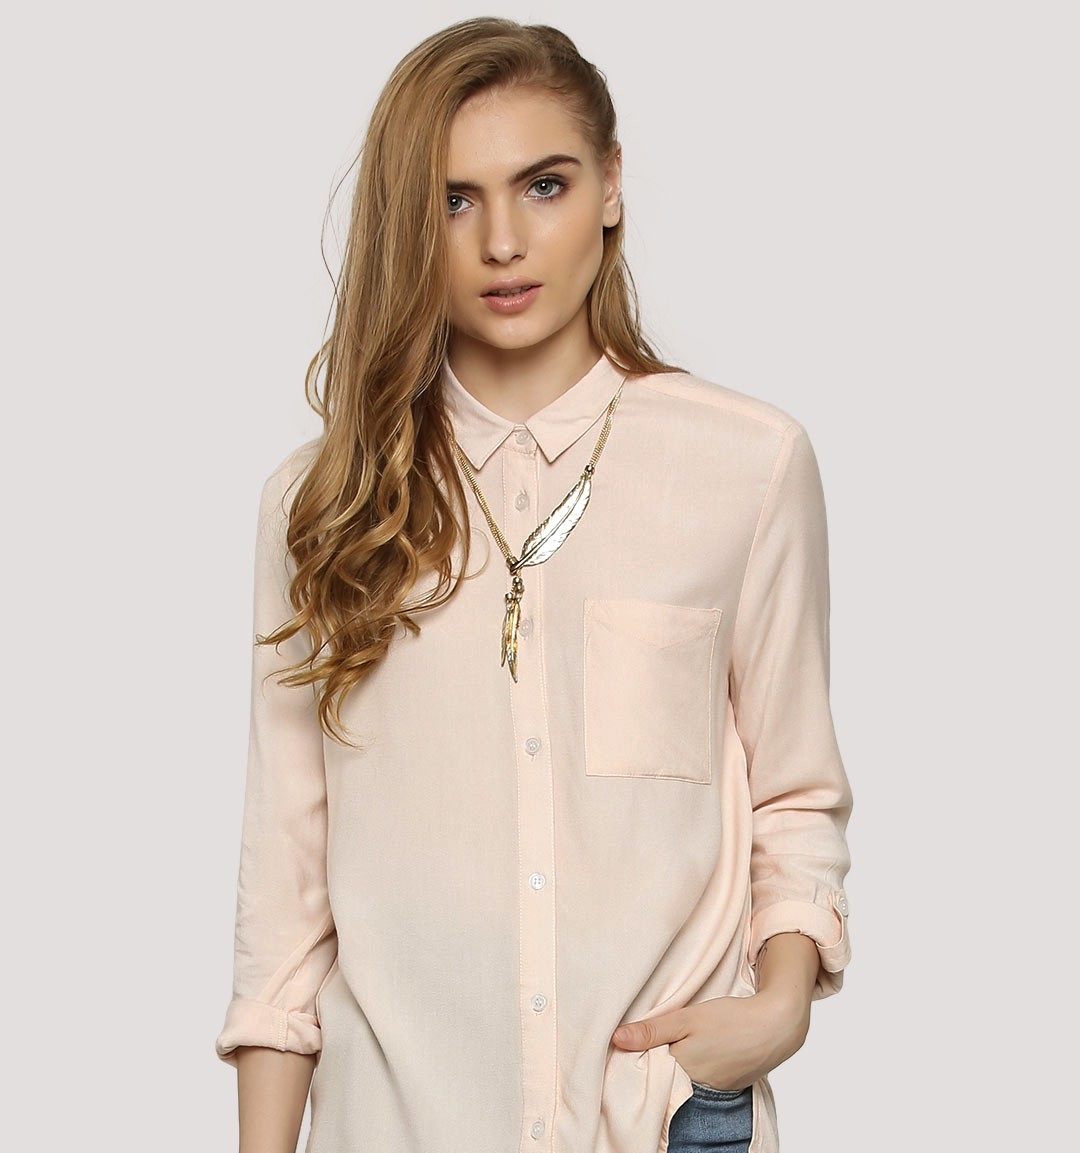 koovs RTW Collar shirt for winters